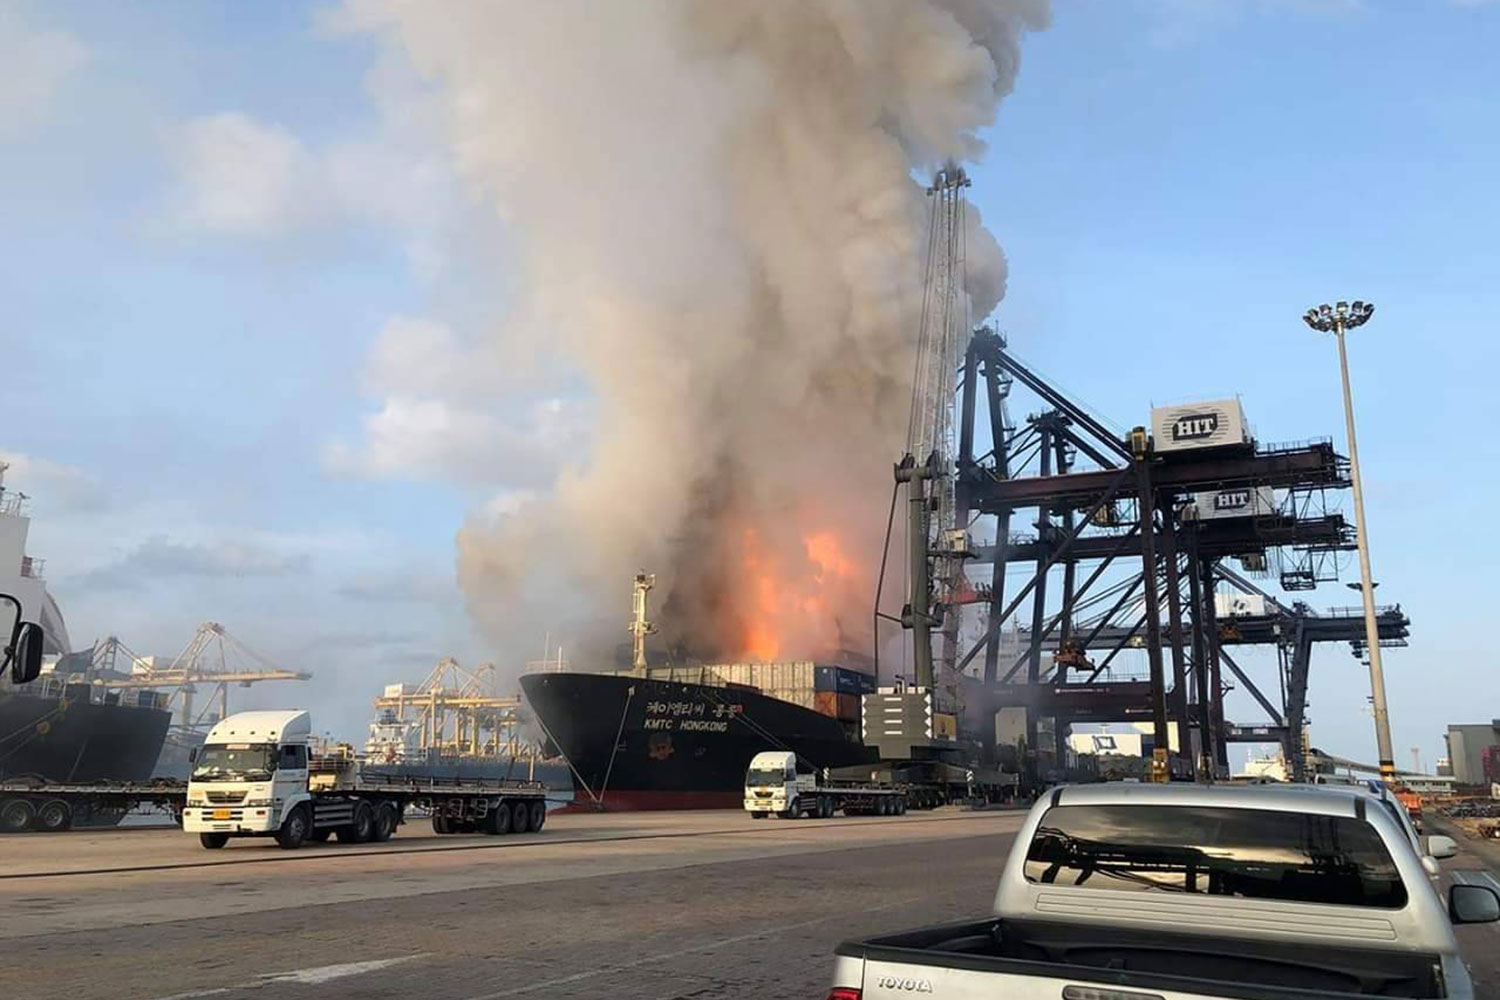 Thick black smoke billows from a cargo ship at Laem Chabang port in Sri Racha at dawn on Saturday. At least 50 people, mostly crew members working in the area, developed skin and eye trouble and were treated at hospital. (Photo by Trinai Jansrichol)